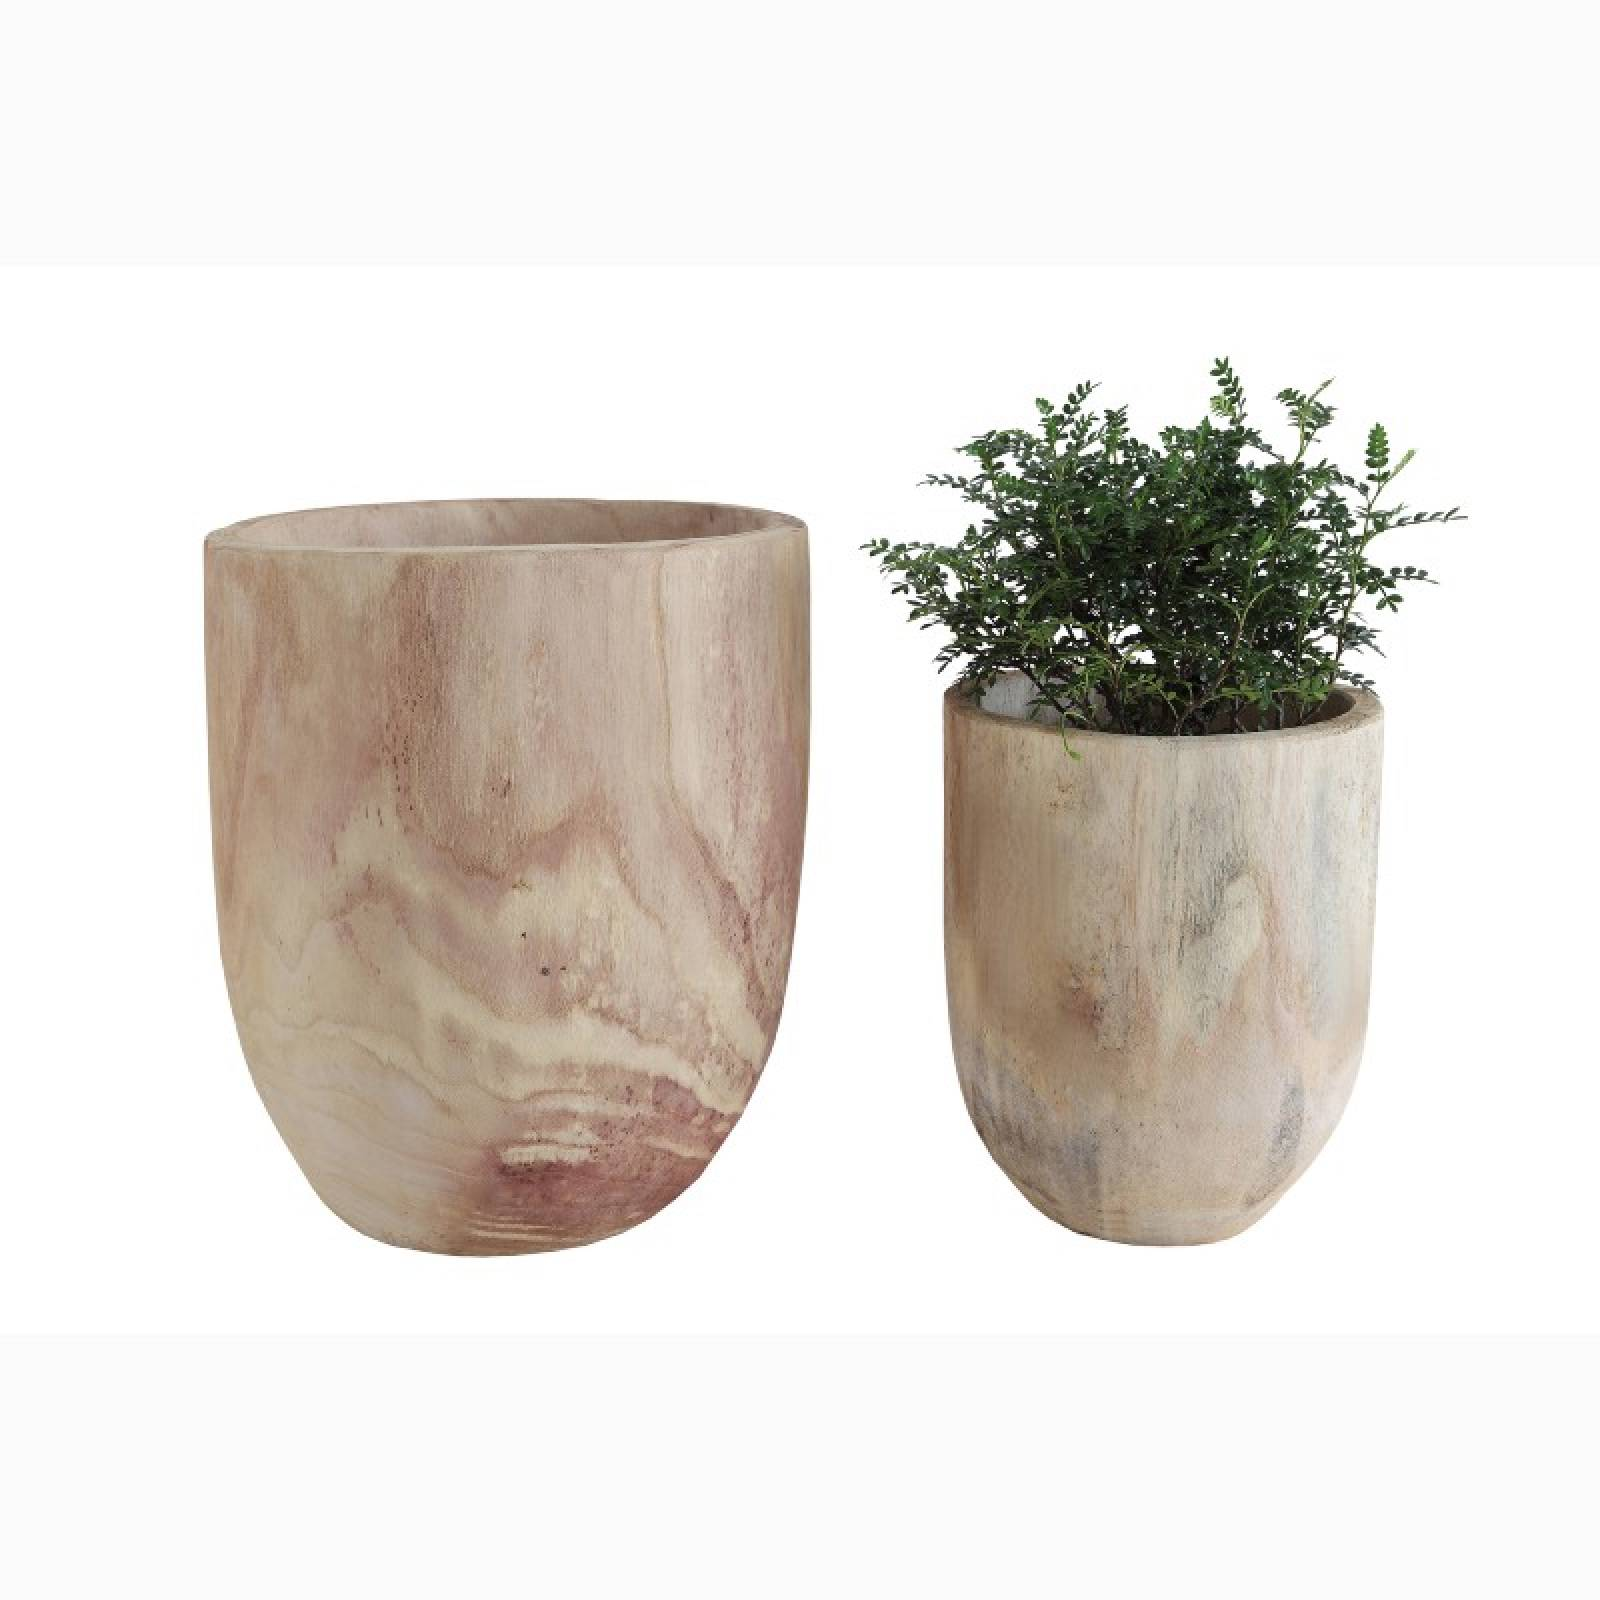 Small Wooden Carved Trunk Planter Pot